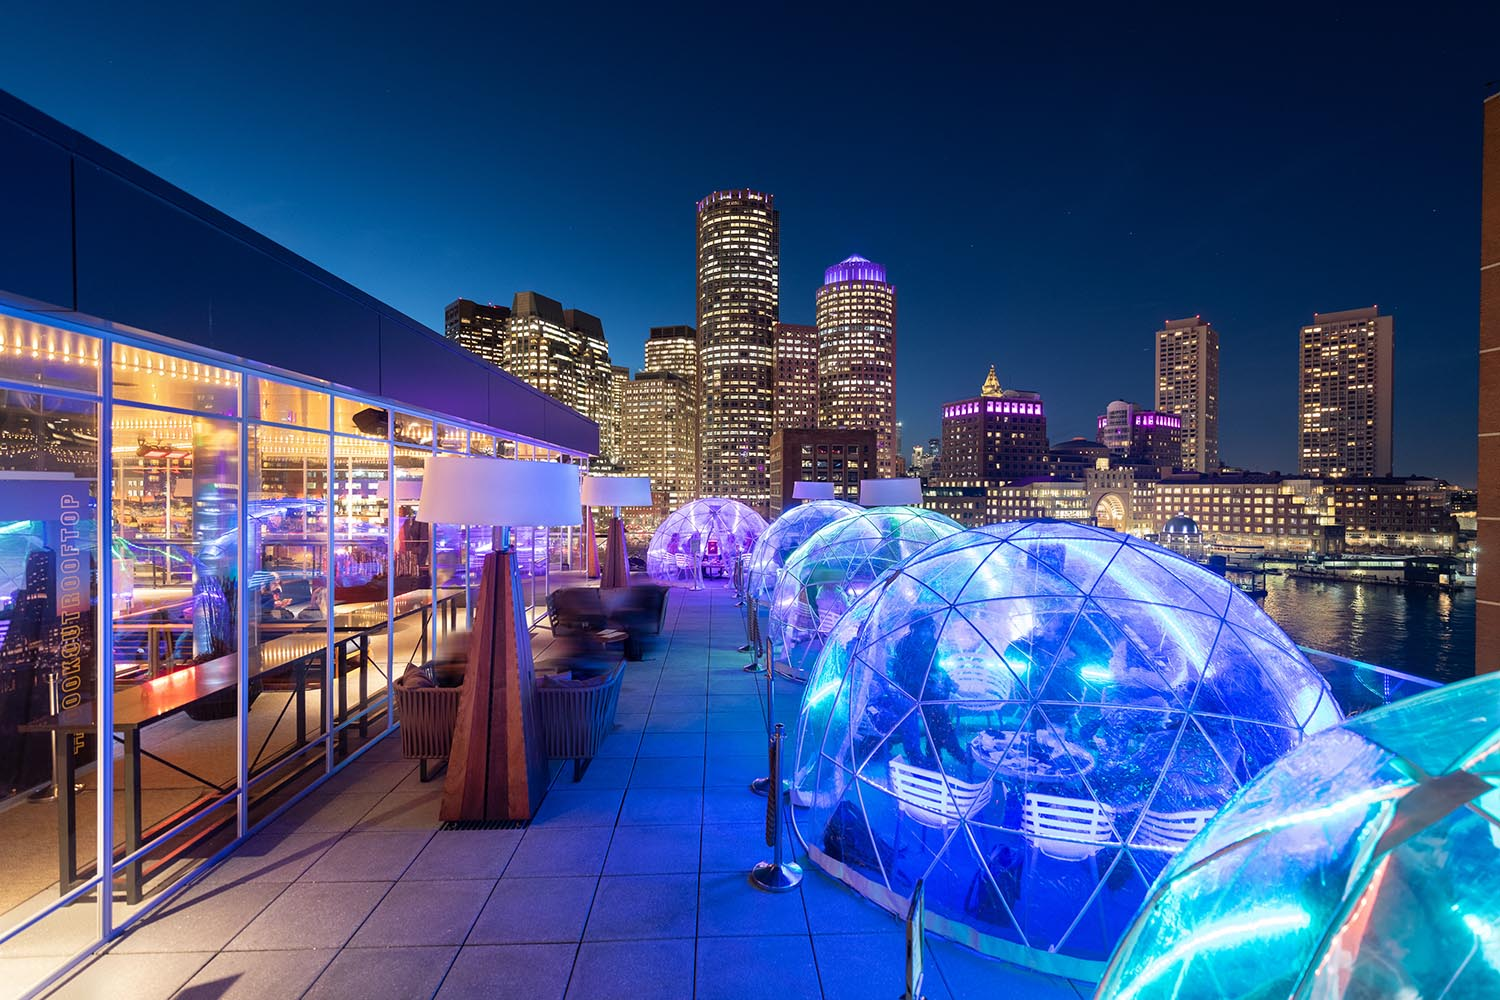 heated igloos glowing with blue light against the Boston skyilne